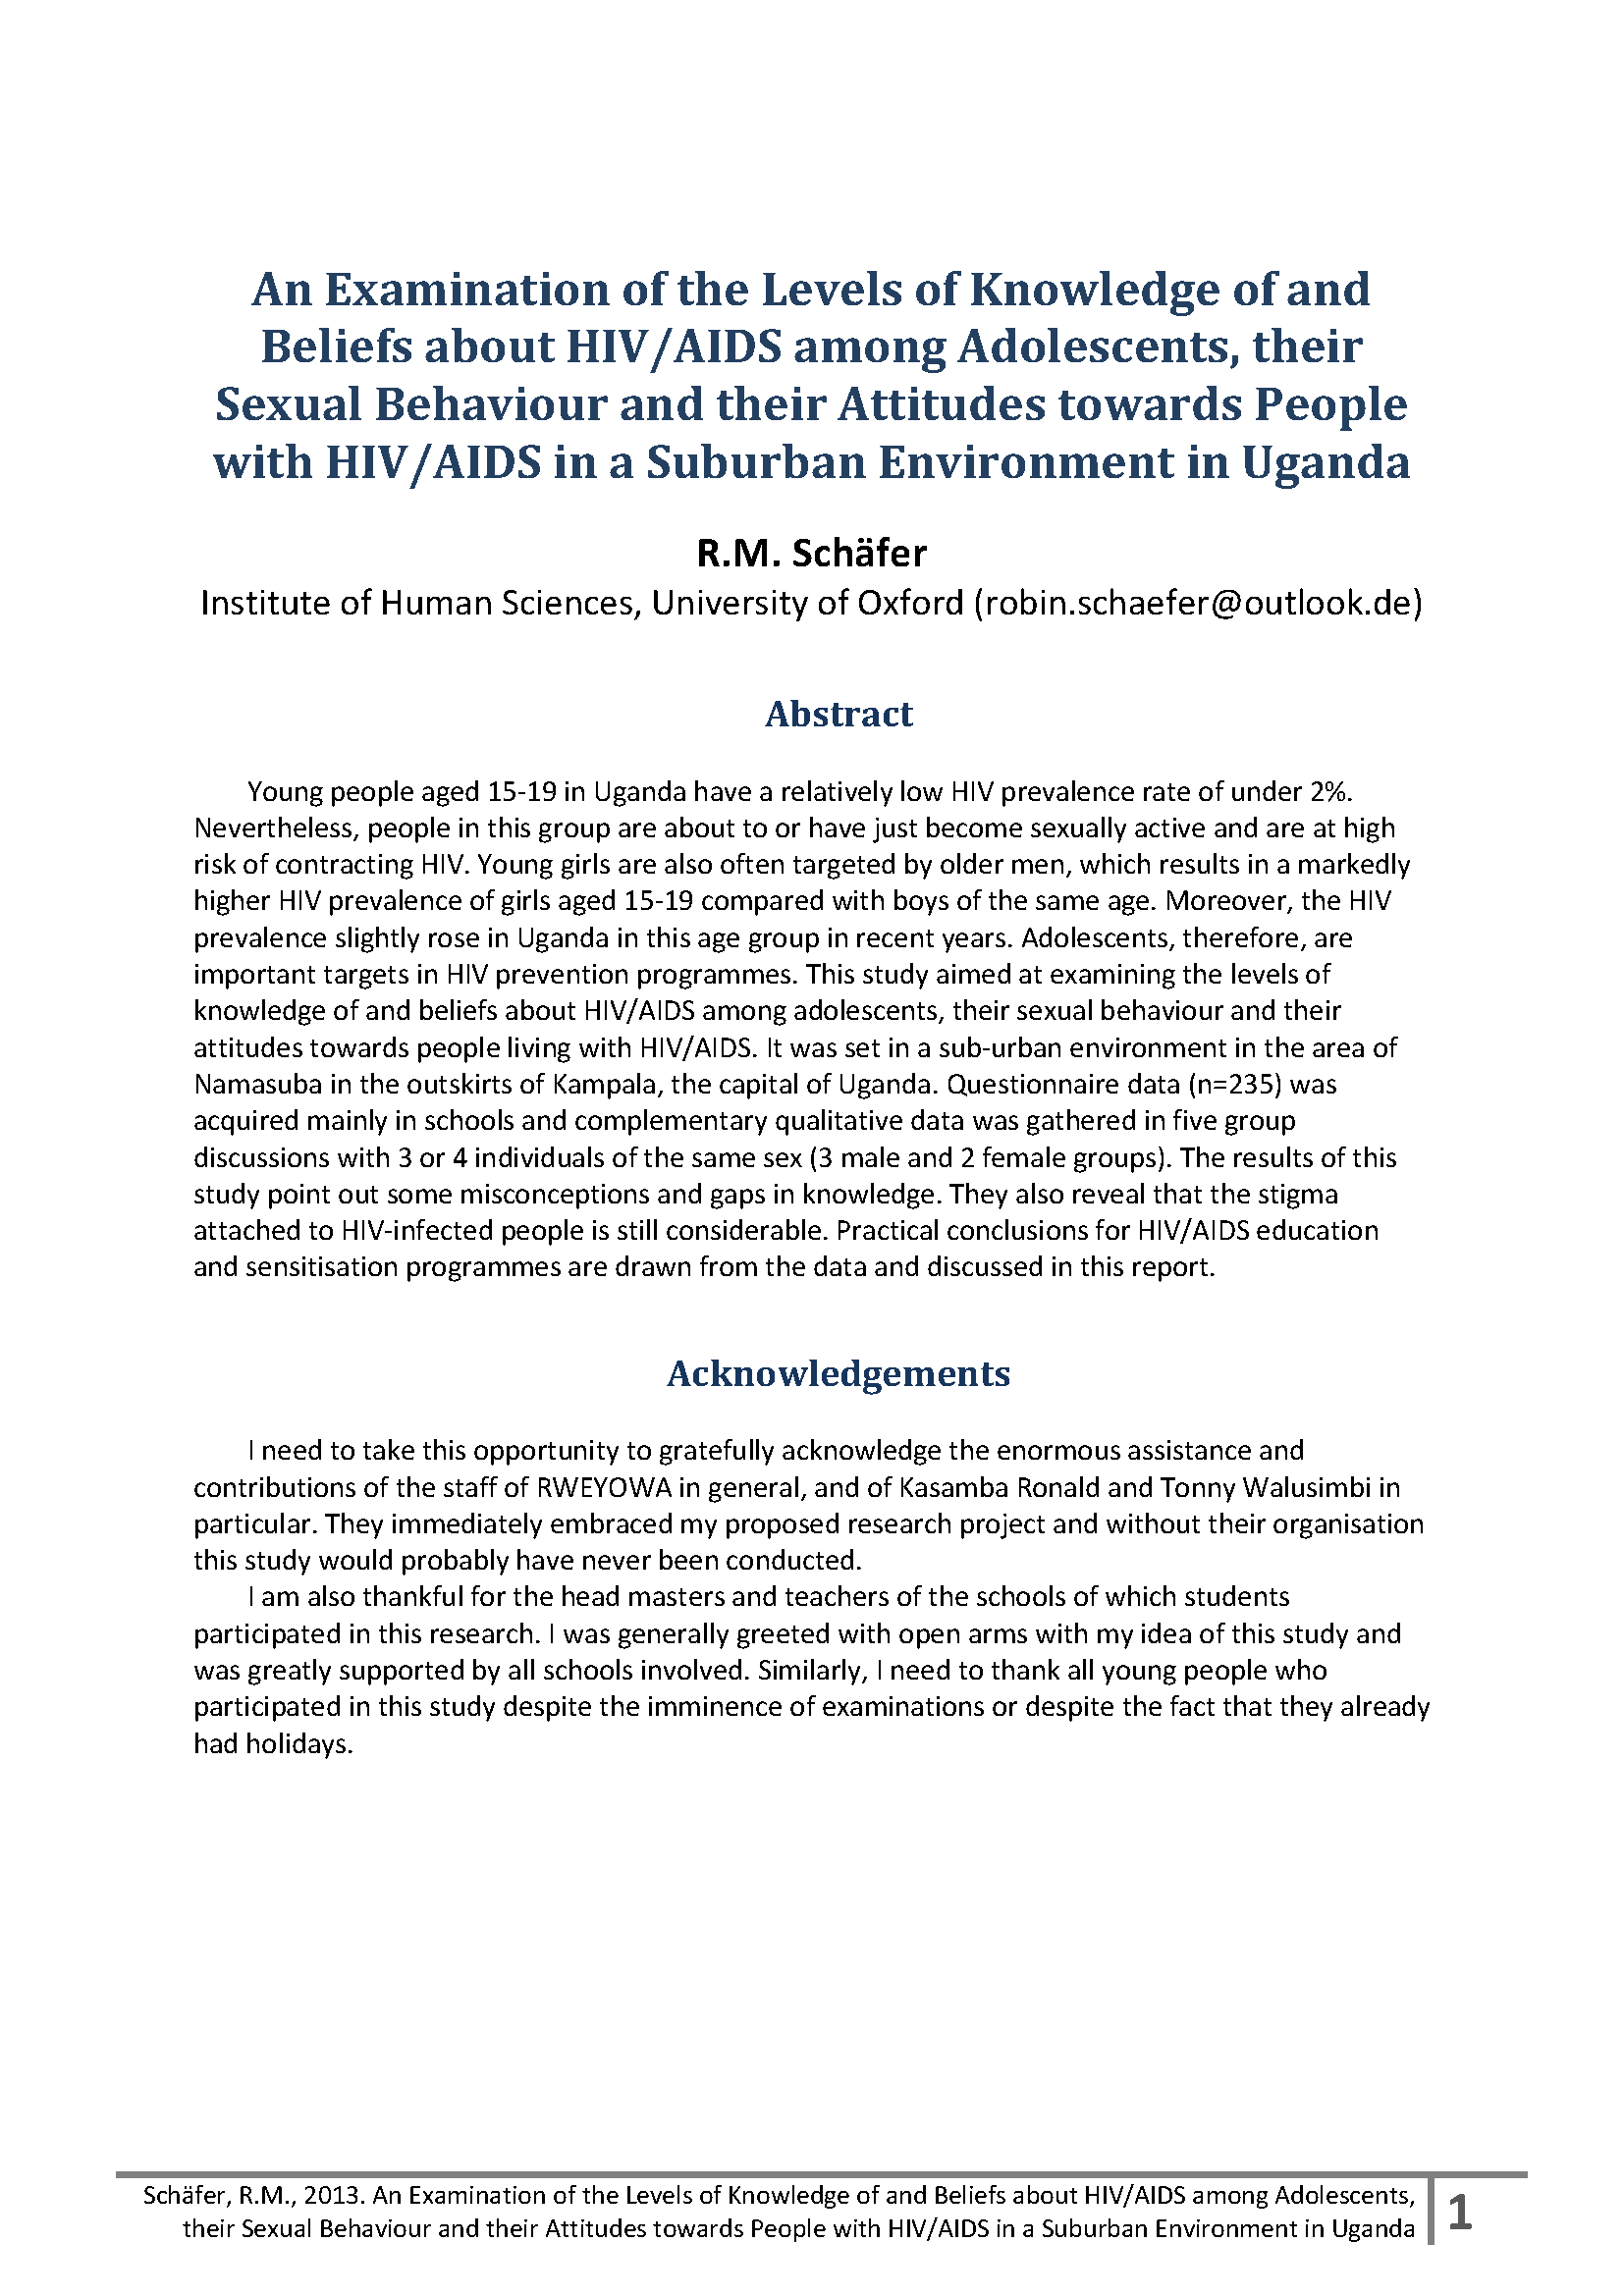 Volunteer Study on HIV & AIDS Knowledge & Beliefs 1